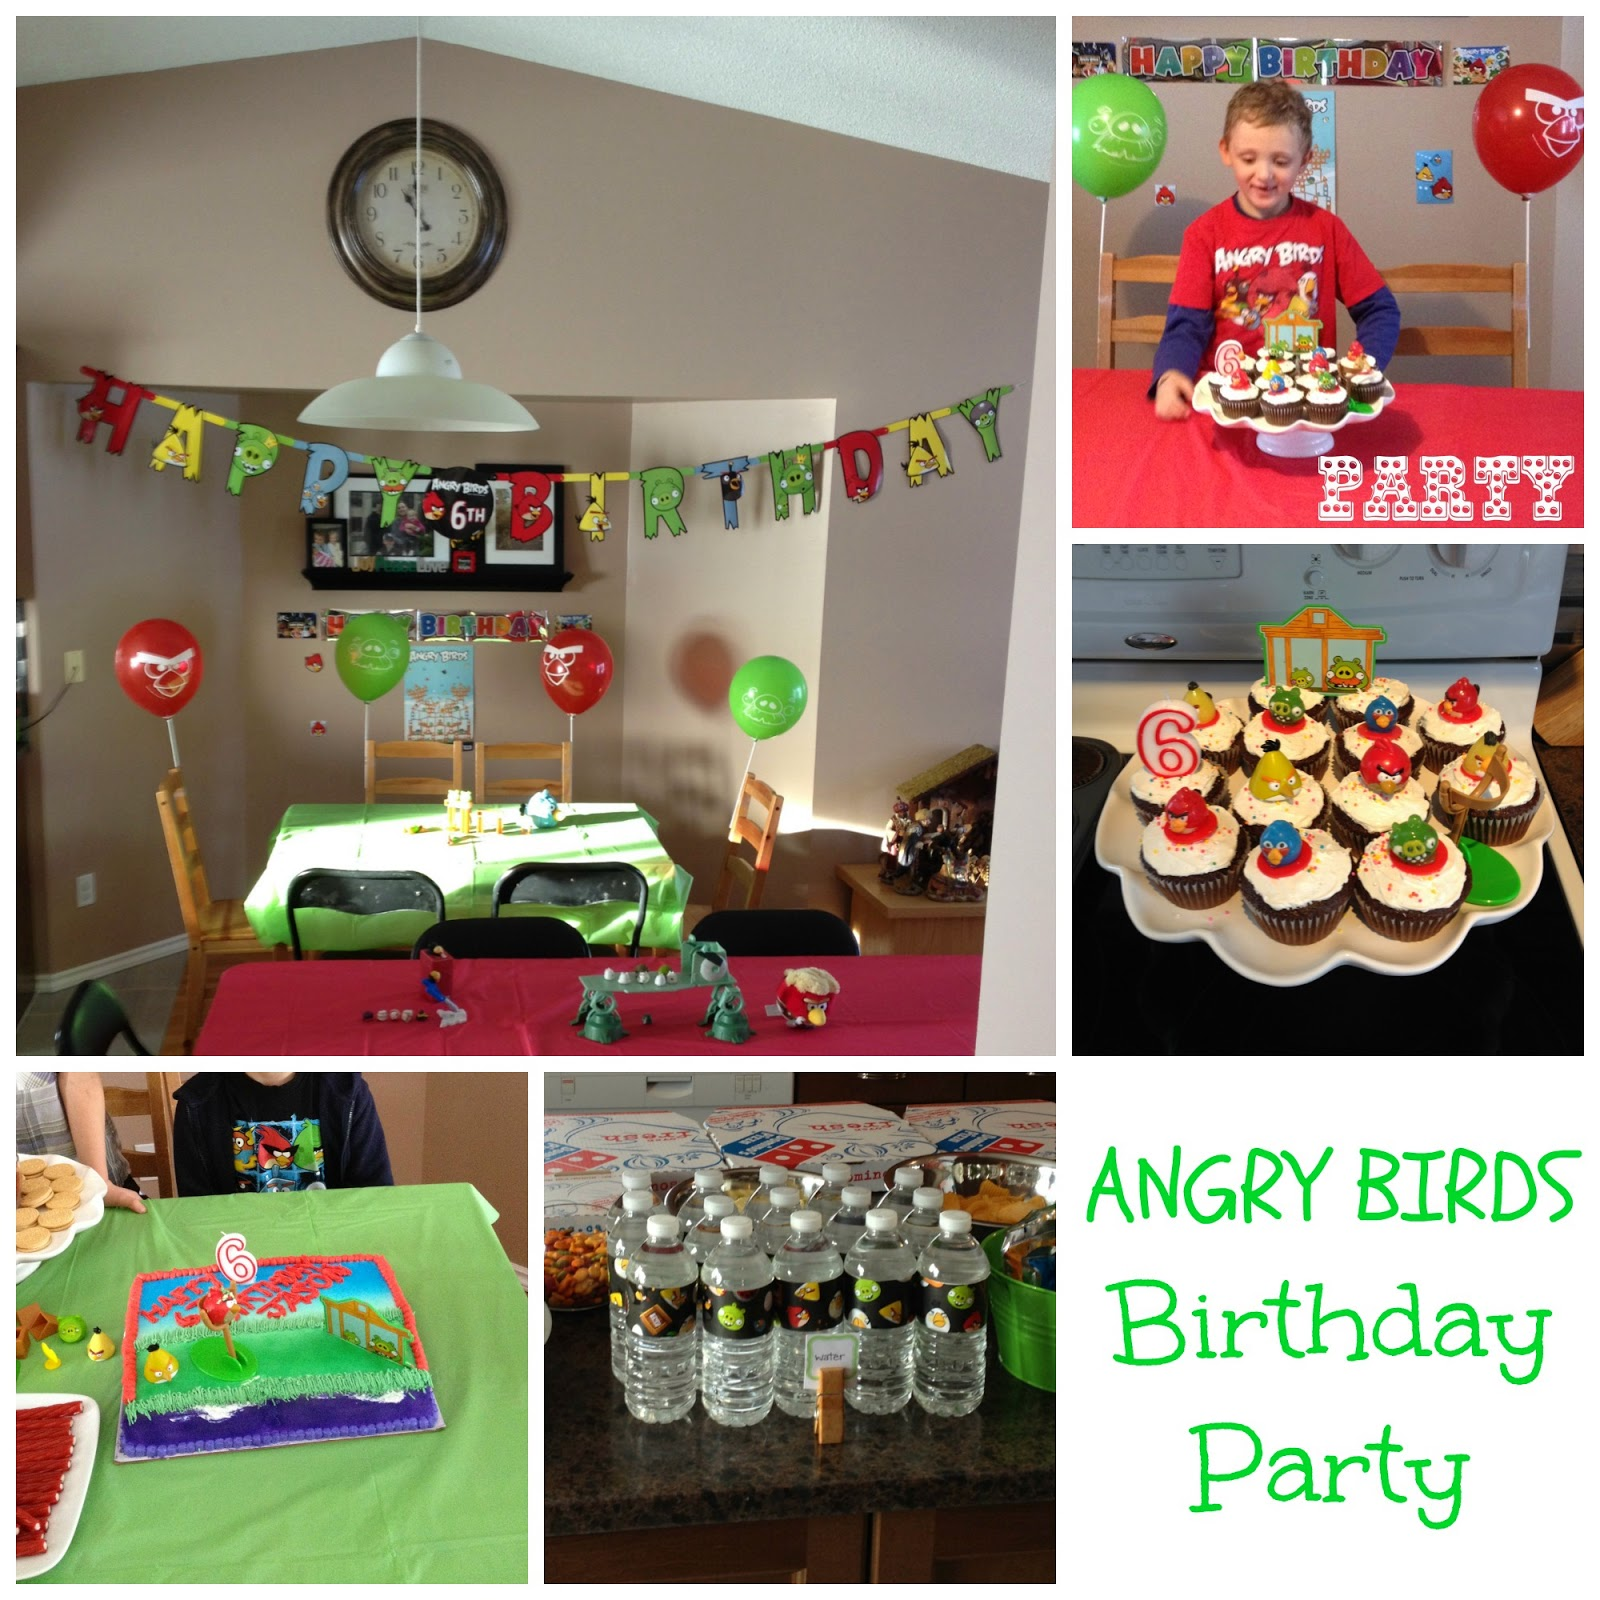 http://craftingandcreativity.blogspot.ca/2014/09/my-sons-6th-birthday-party-angry-birds.html